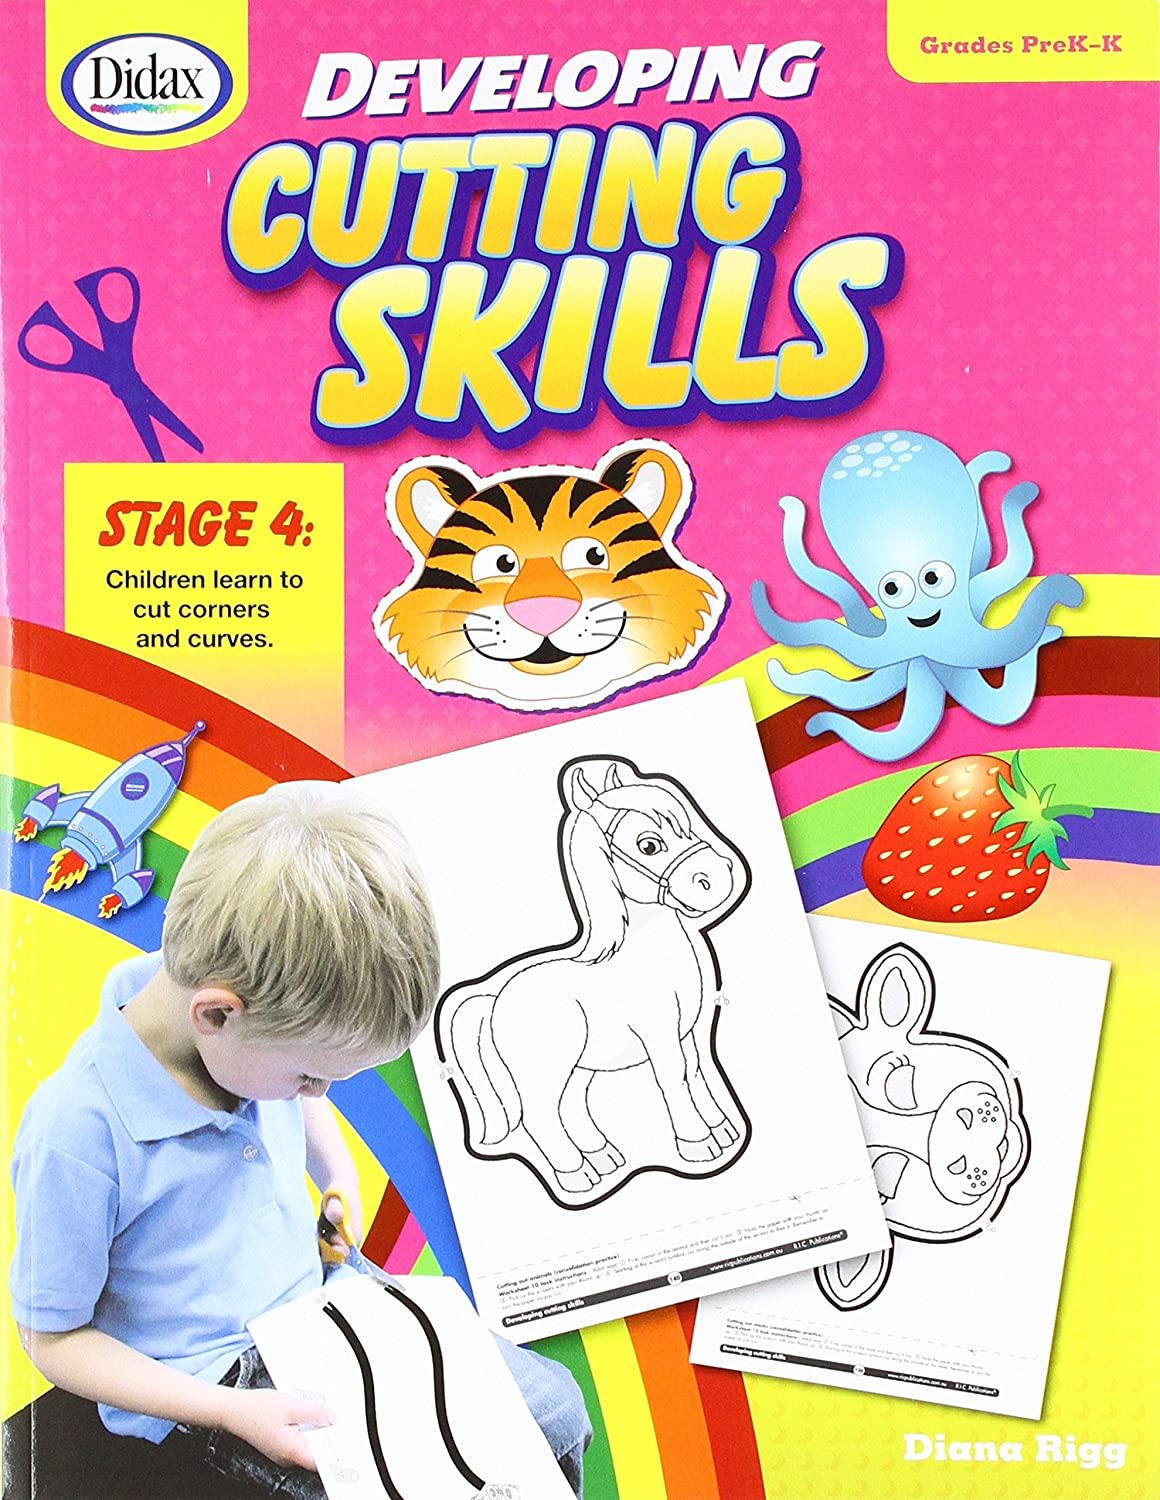 Didax Educational Resources Developing Cutting Skills PreK-K